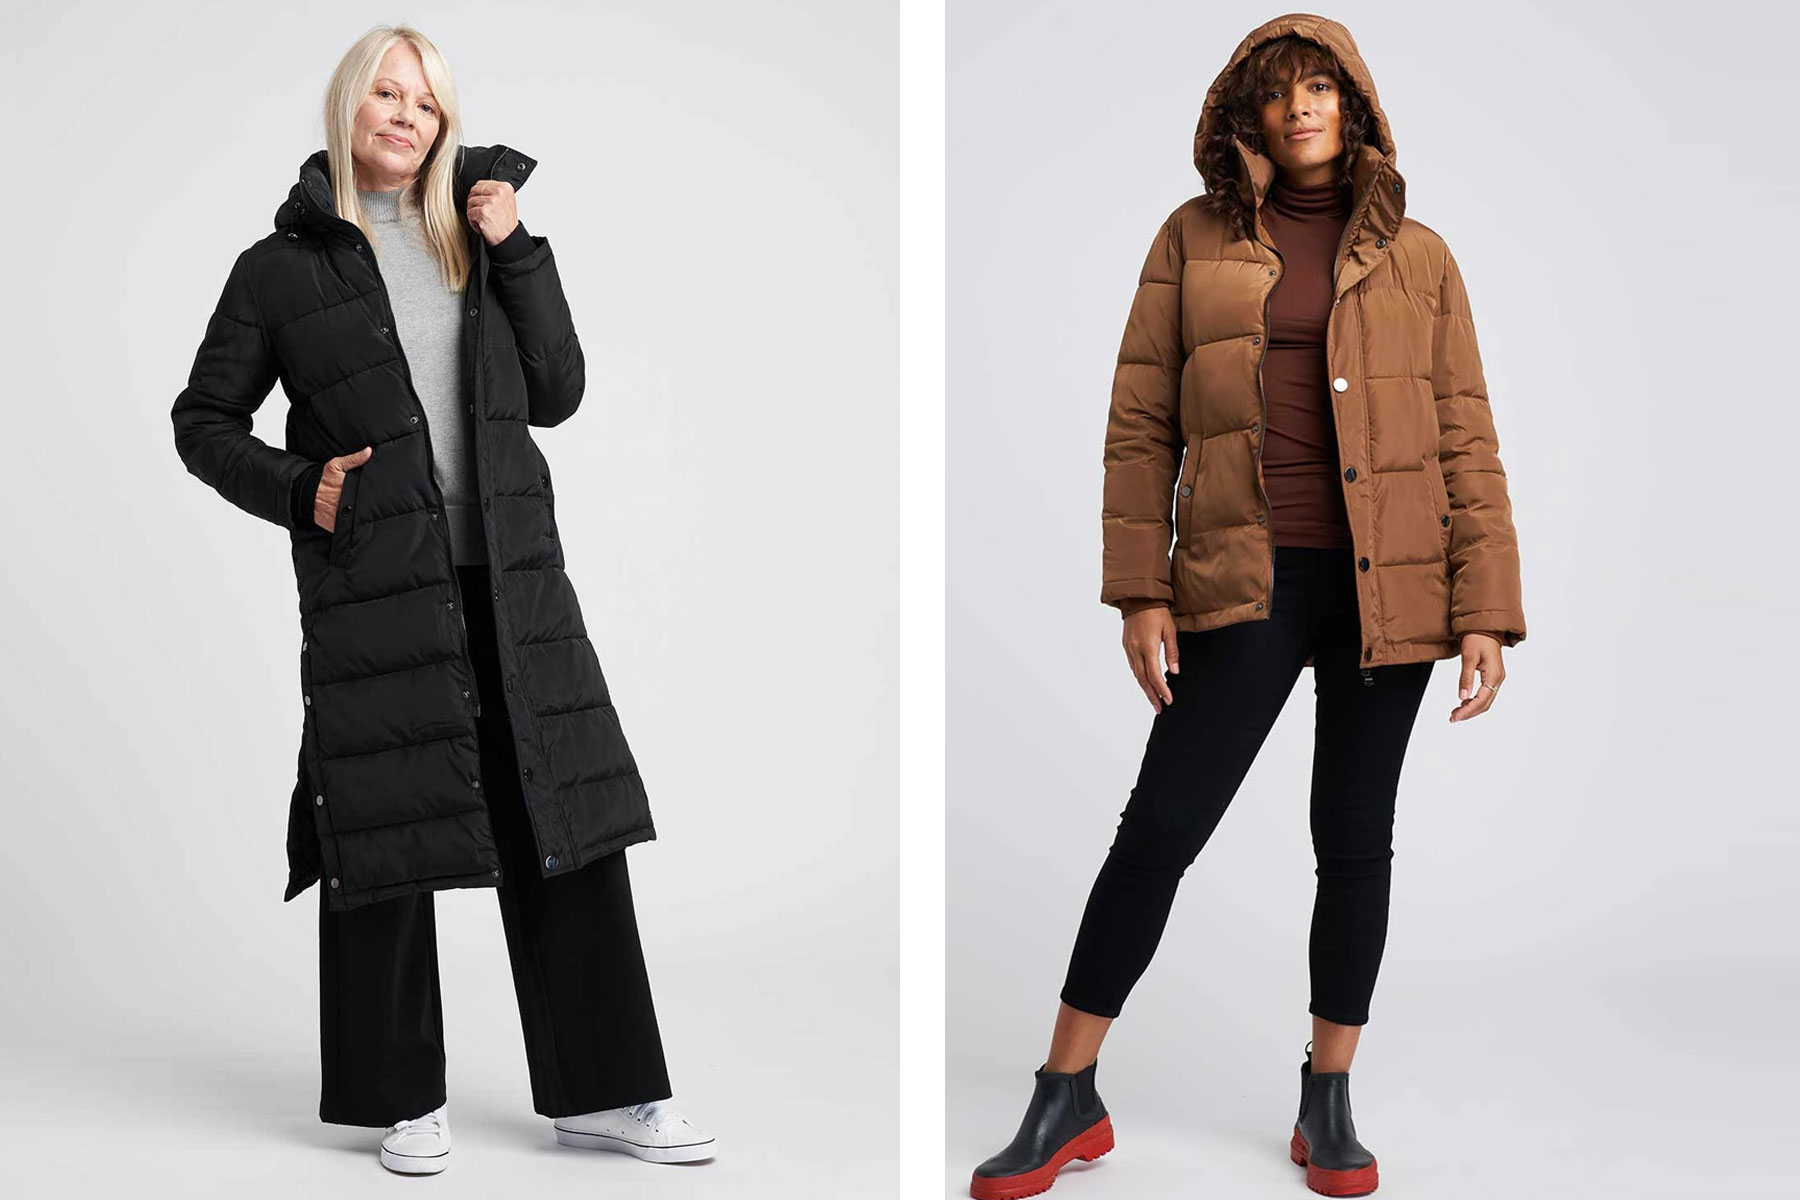 Women wearing black and brown parkas